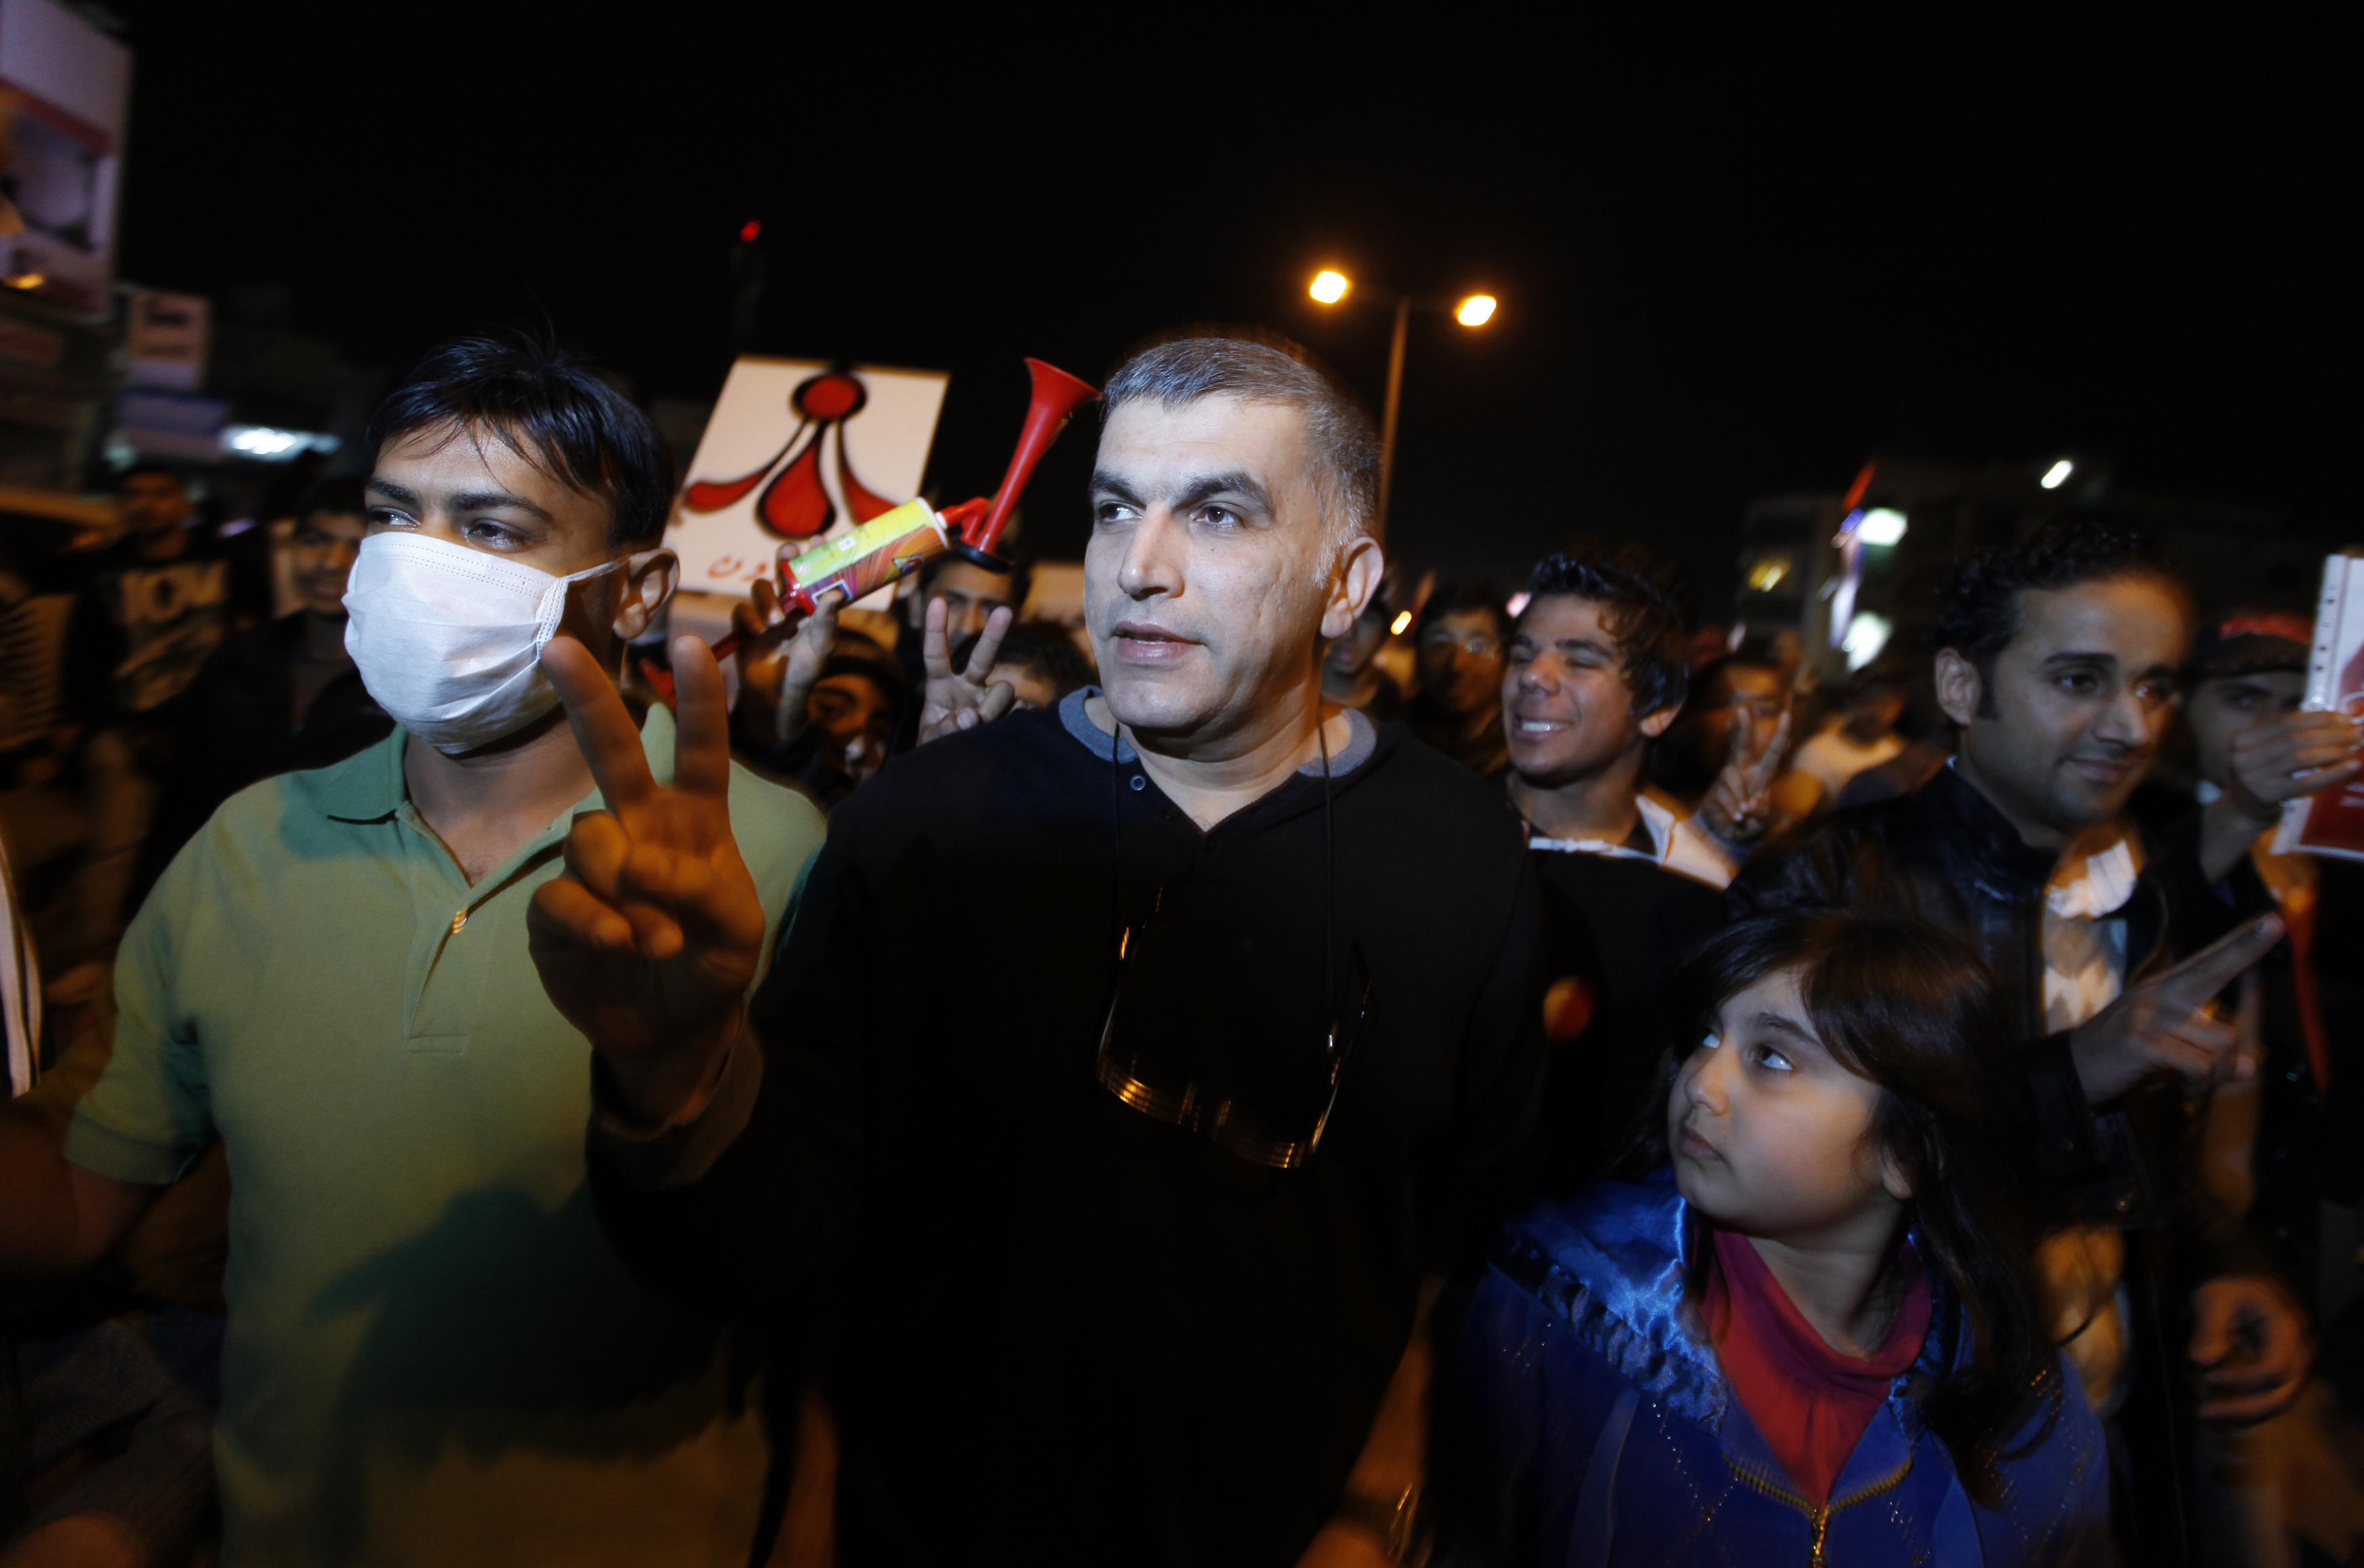 Human rights activist Rajab shows the victory sign as he marches on a highway to participate in a week-long anti-government sit-in in Budaiya